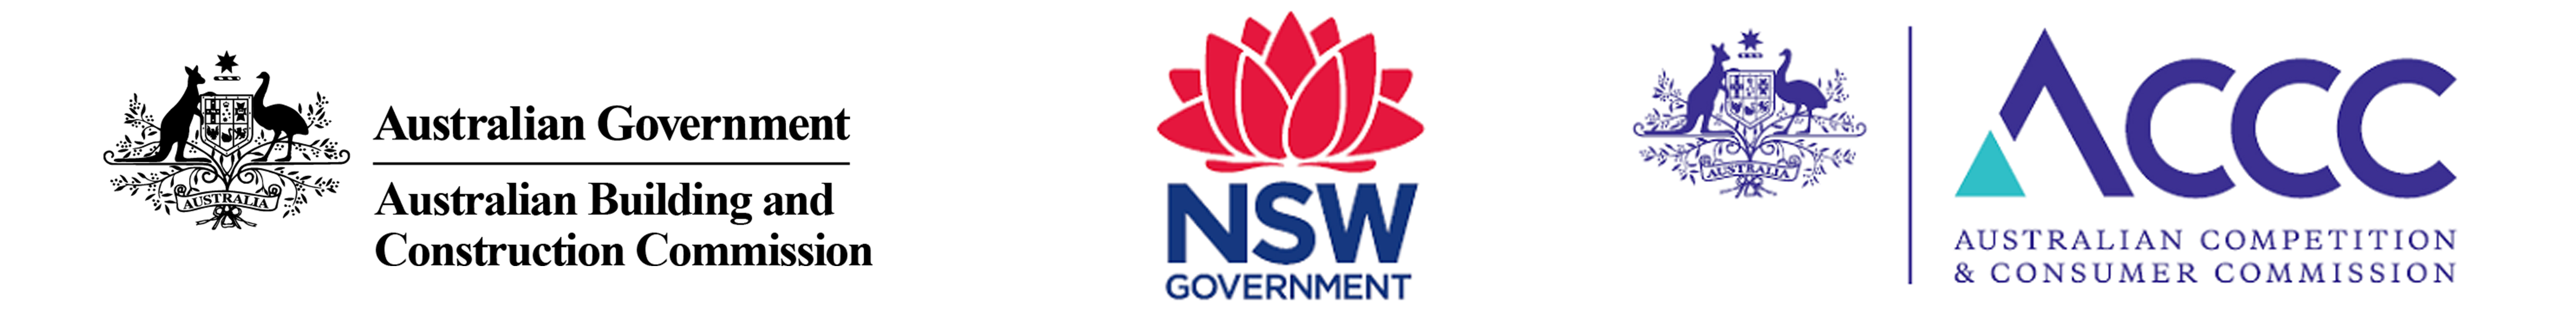 ABCC, NSW Government, ACCC